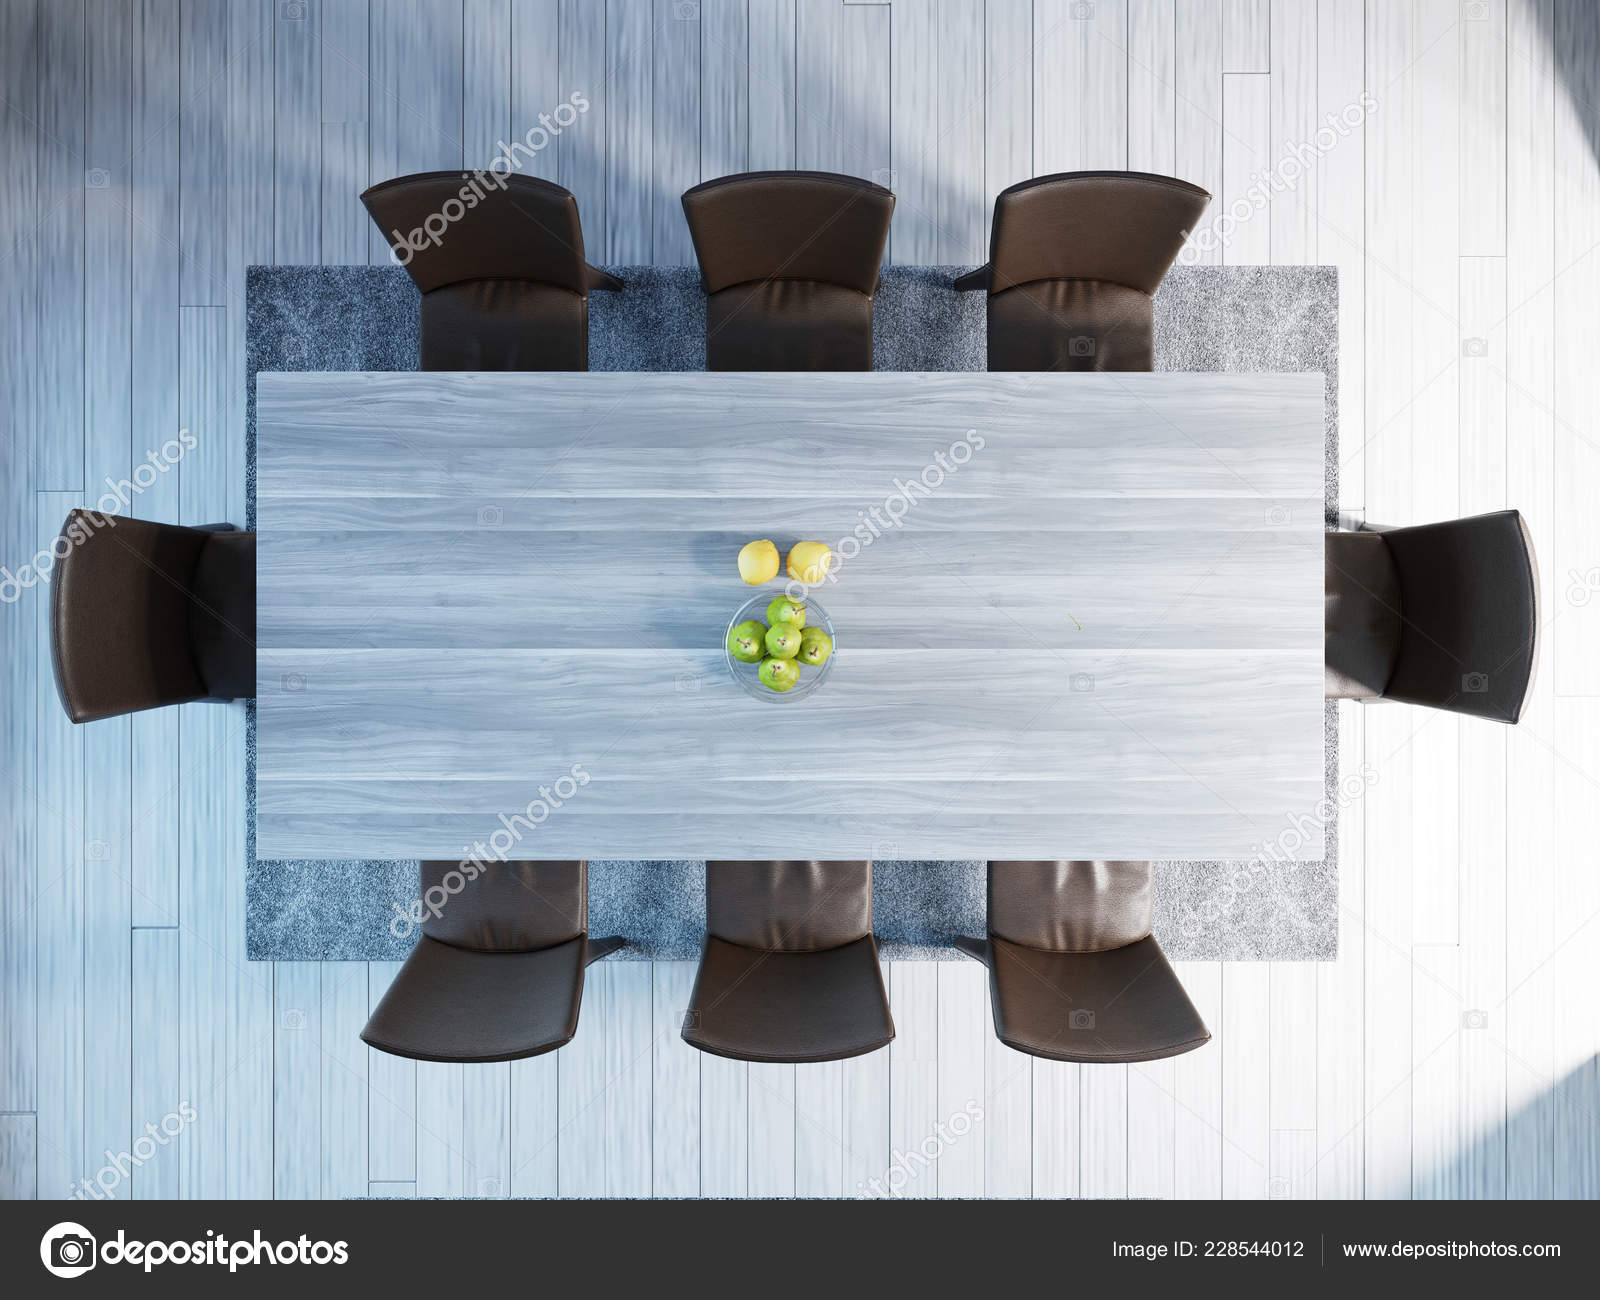 Top View Modern Dining Room Interior Table Chairs Rendering Stock Photo Image By C Kuprin33 228544012